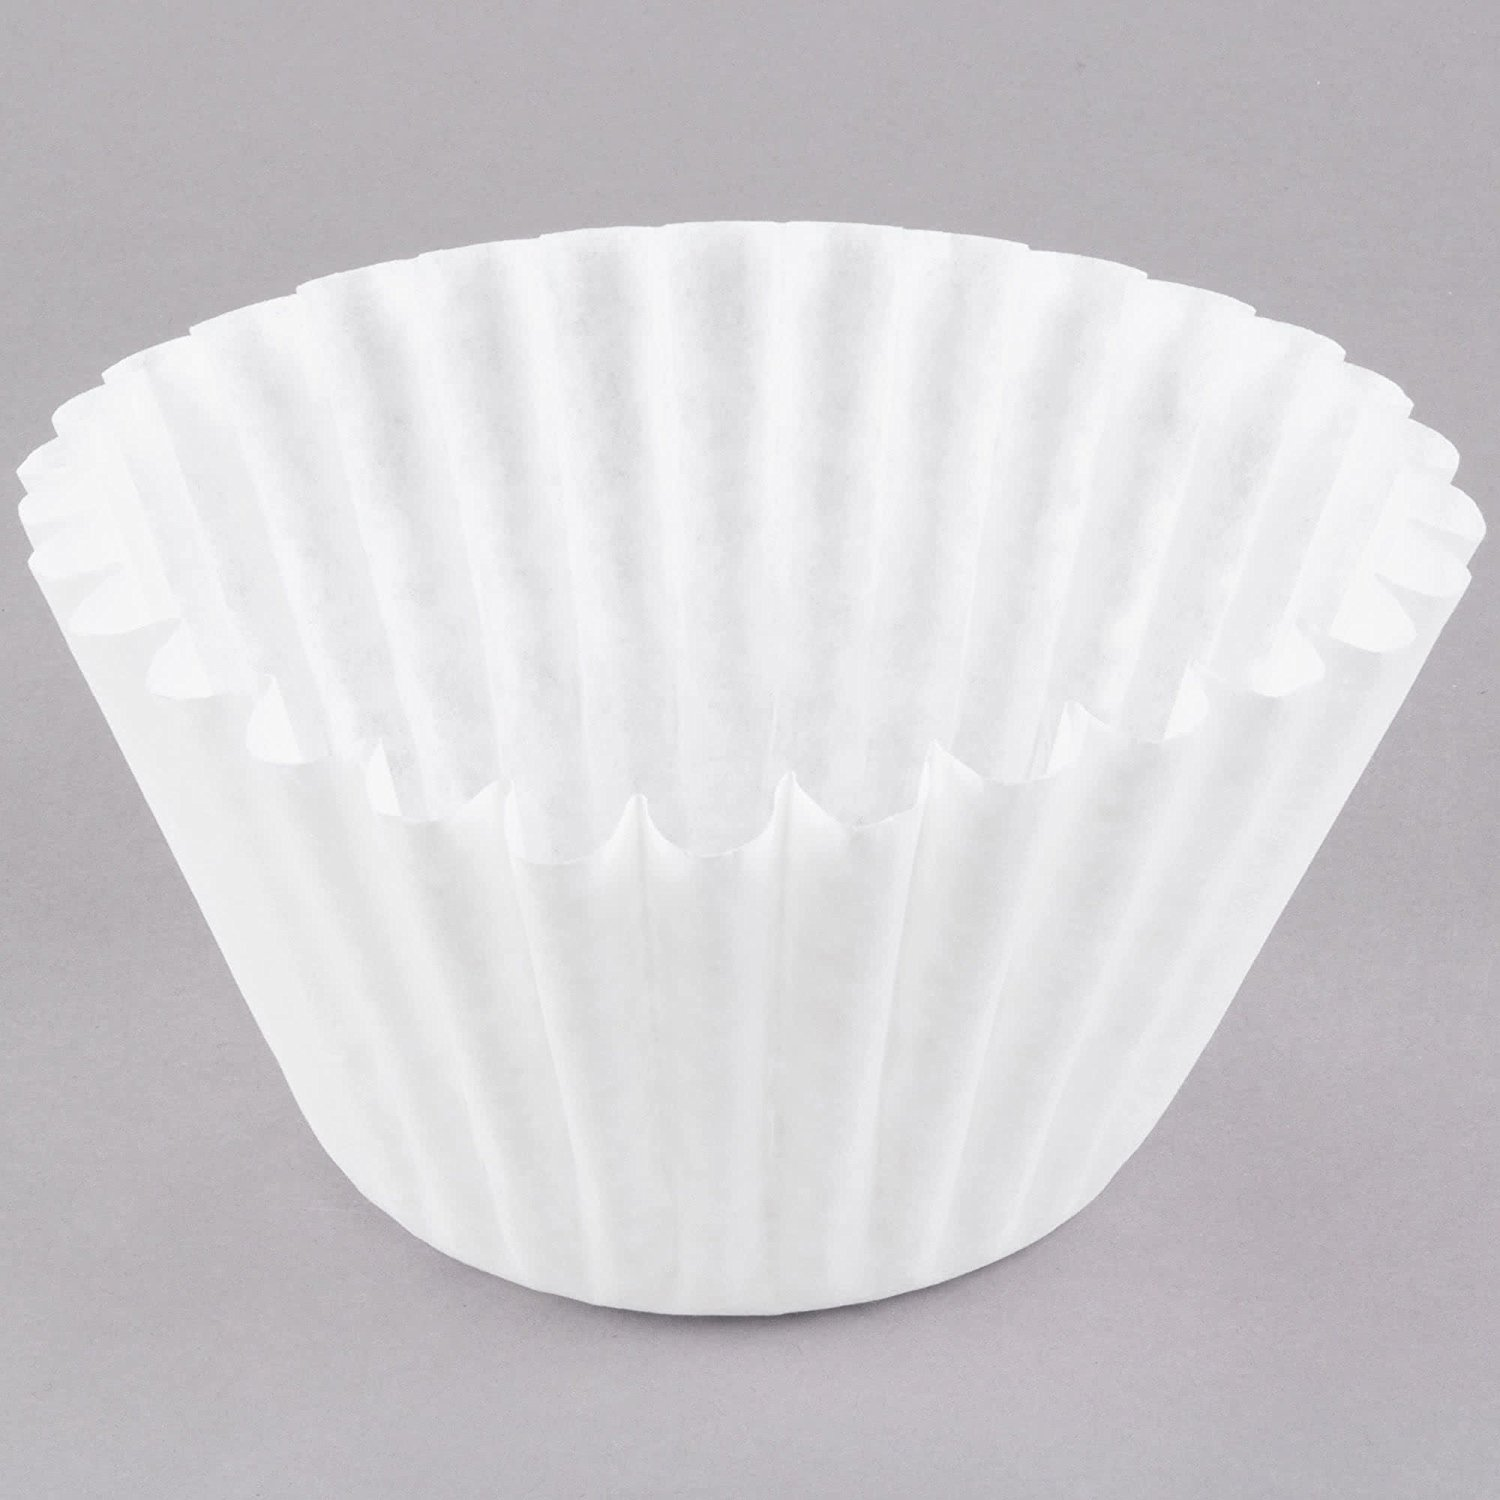 "TableTop King ABB1.5WP 13"" x 5"" Coffee Filter for ABB1.5P and ABB1.5SS Shuttle Coffee Brewer Baskets - 500/Case"